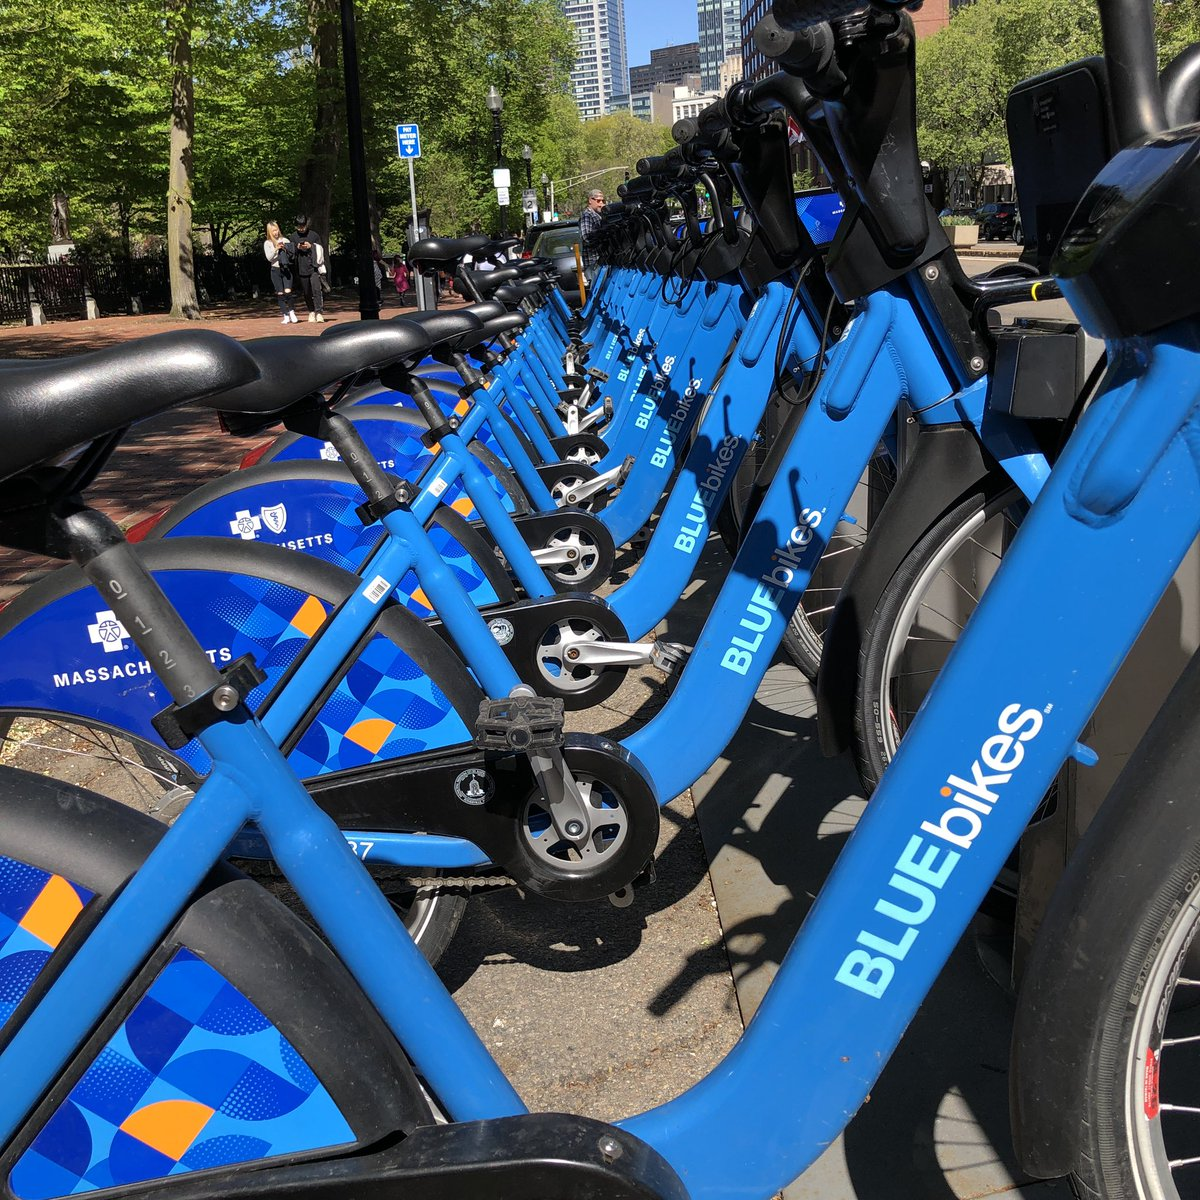 City of Boston, Brookline, Cambridge, Everett & Somerville are offering essential workers a free 30-day pass on @RideBluebikes. Including; * Employees of retailers & restaurants * Employees of grocery stores * Employees of pharmacies * Hospital staff boston.gov/news/free-blue…